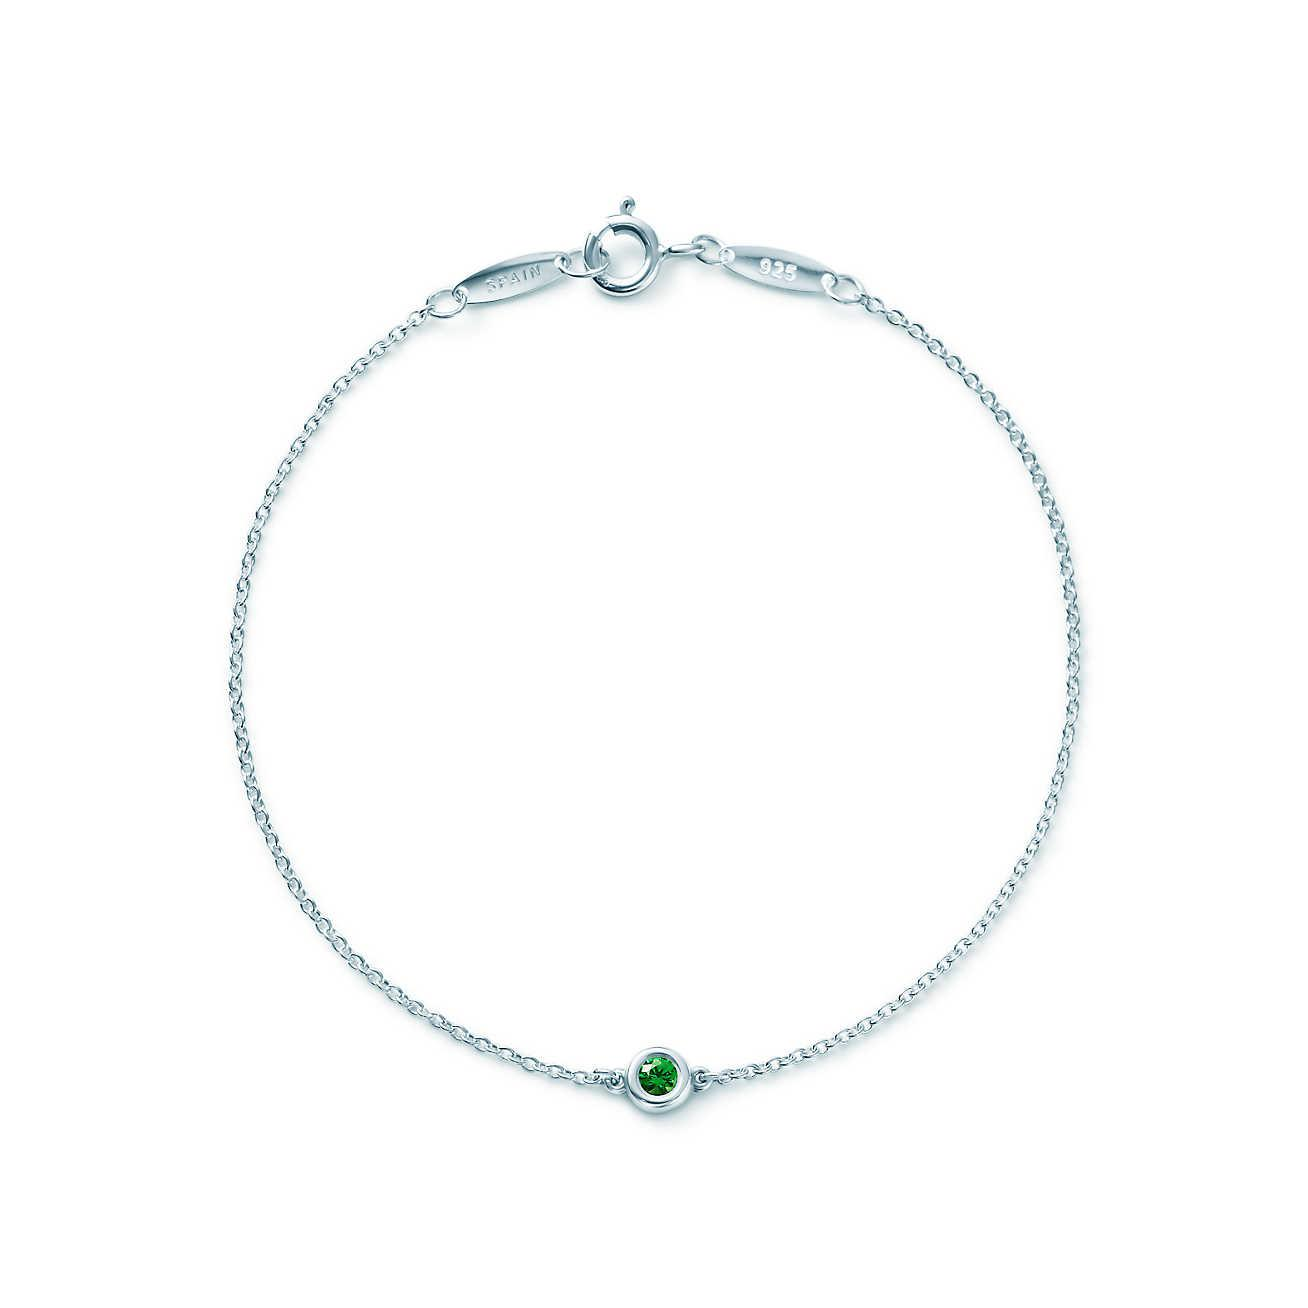 Elsa Peretti Color by the Yard bracelet in silver with green aventurine Tiffany & Co. LuP3k